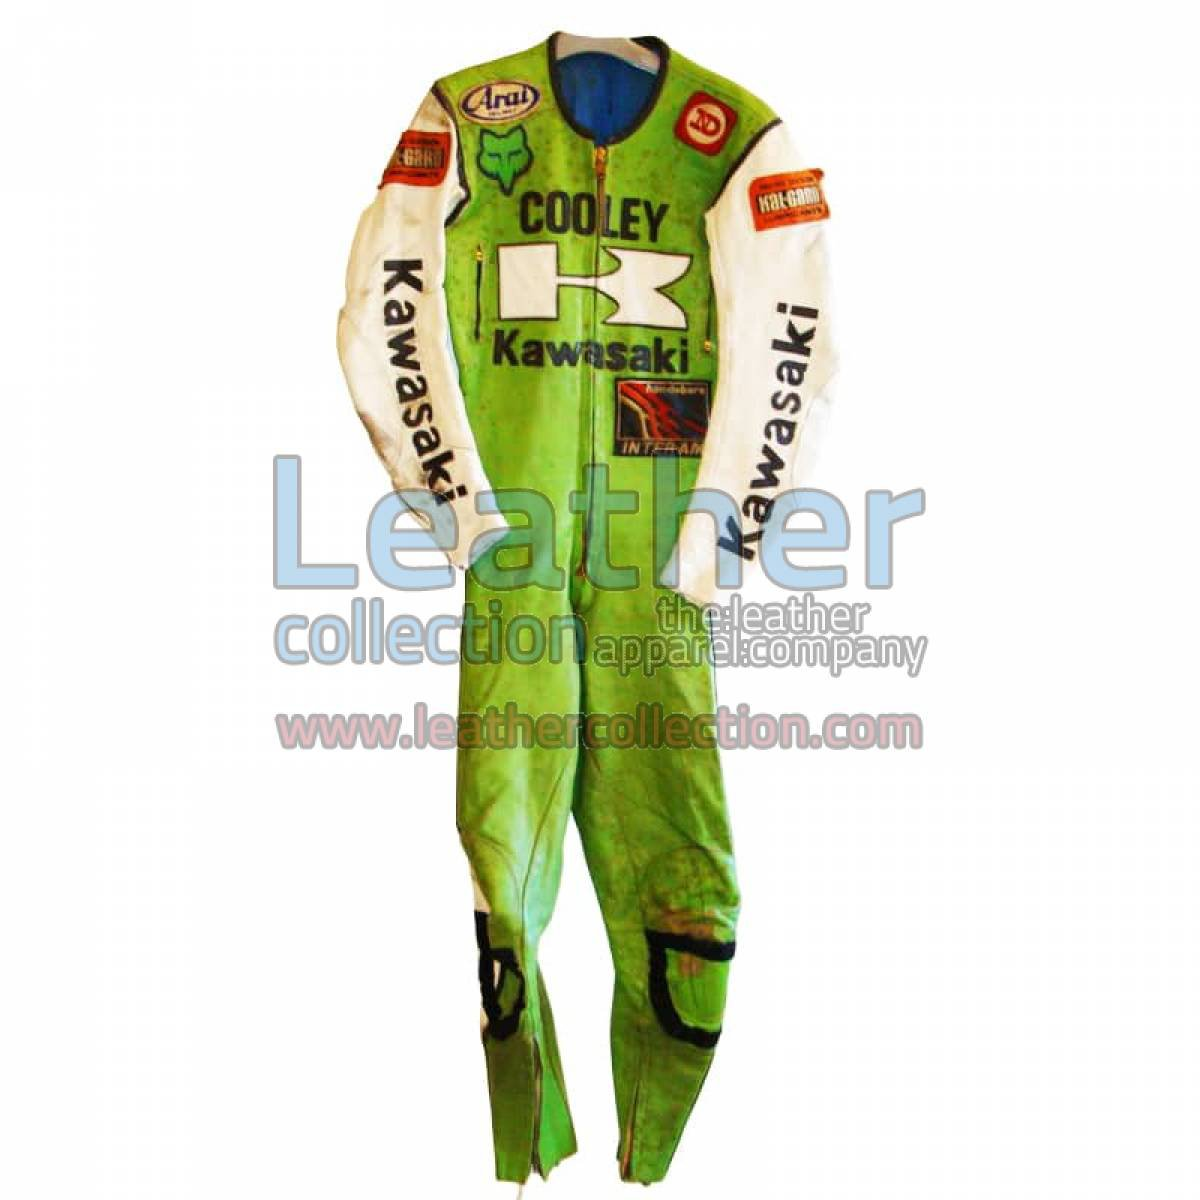 Wes Cooley Kawasaki AMA 1983 Leather Suit